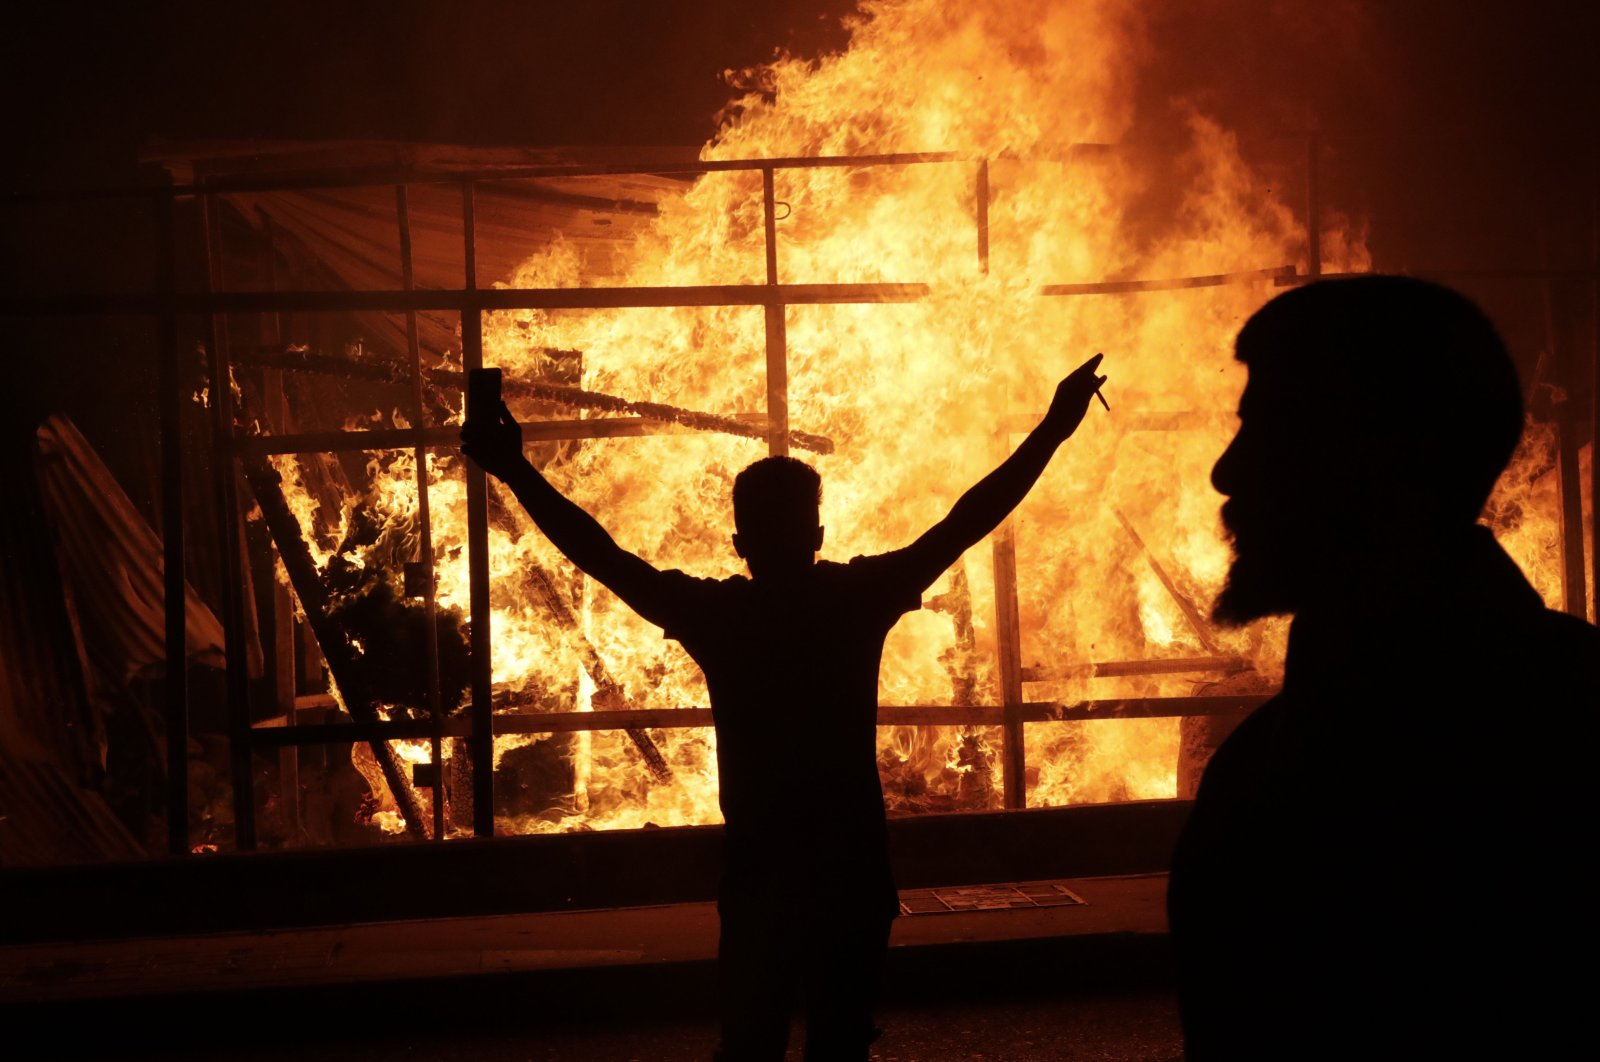 A Lebanese anti-government protester raises his arms in front of a burning wooden structure during a demonstration against dire economic conditions, Beirut, June 12, 2020. (AFP Photo)